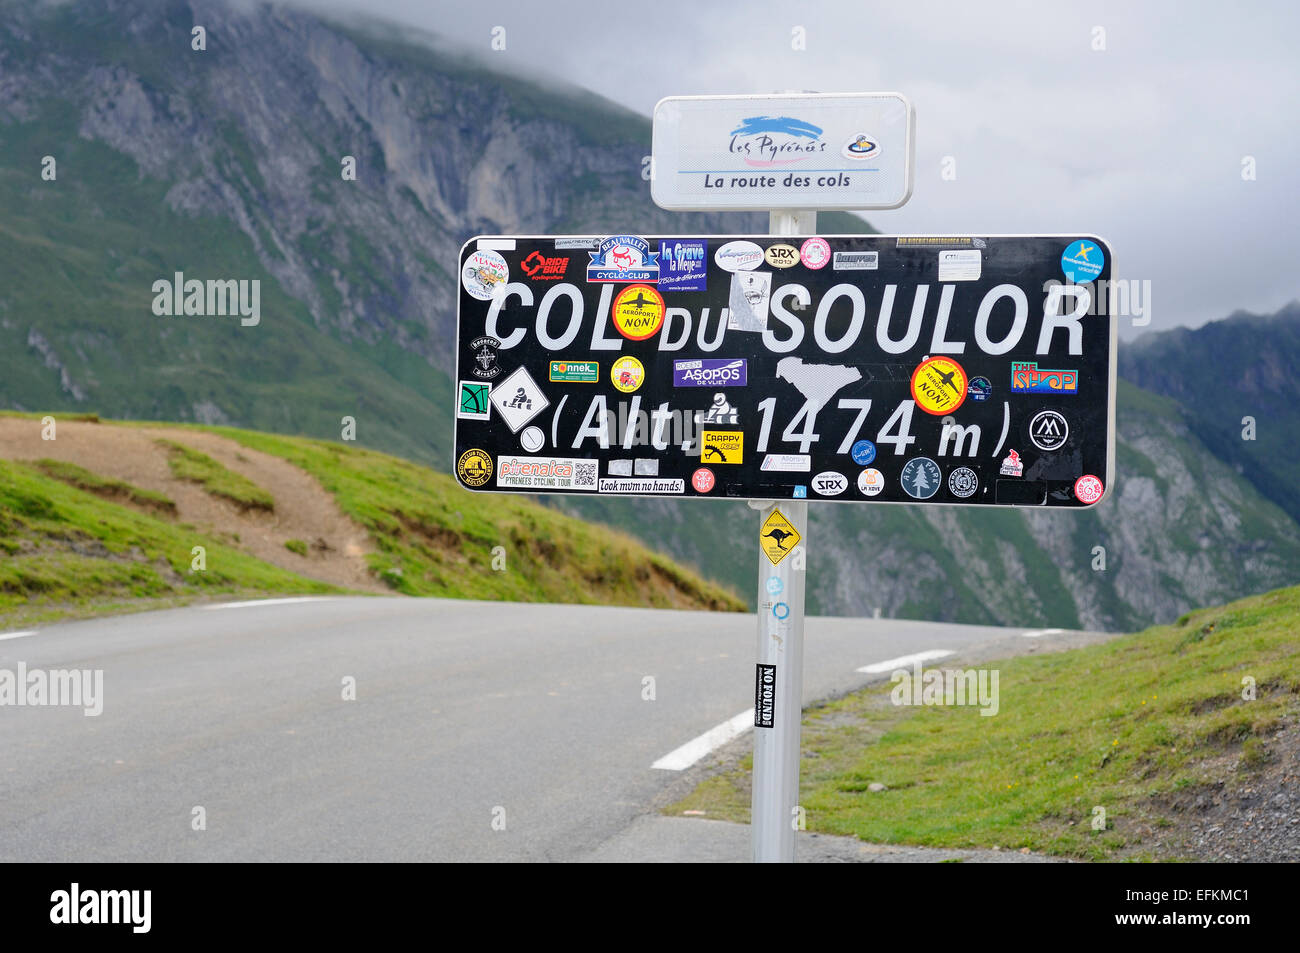 Col du Soulor (1474m), Pyrenees, Hautes Pyrenees (France). Stock Photo